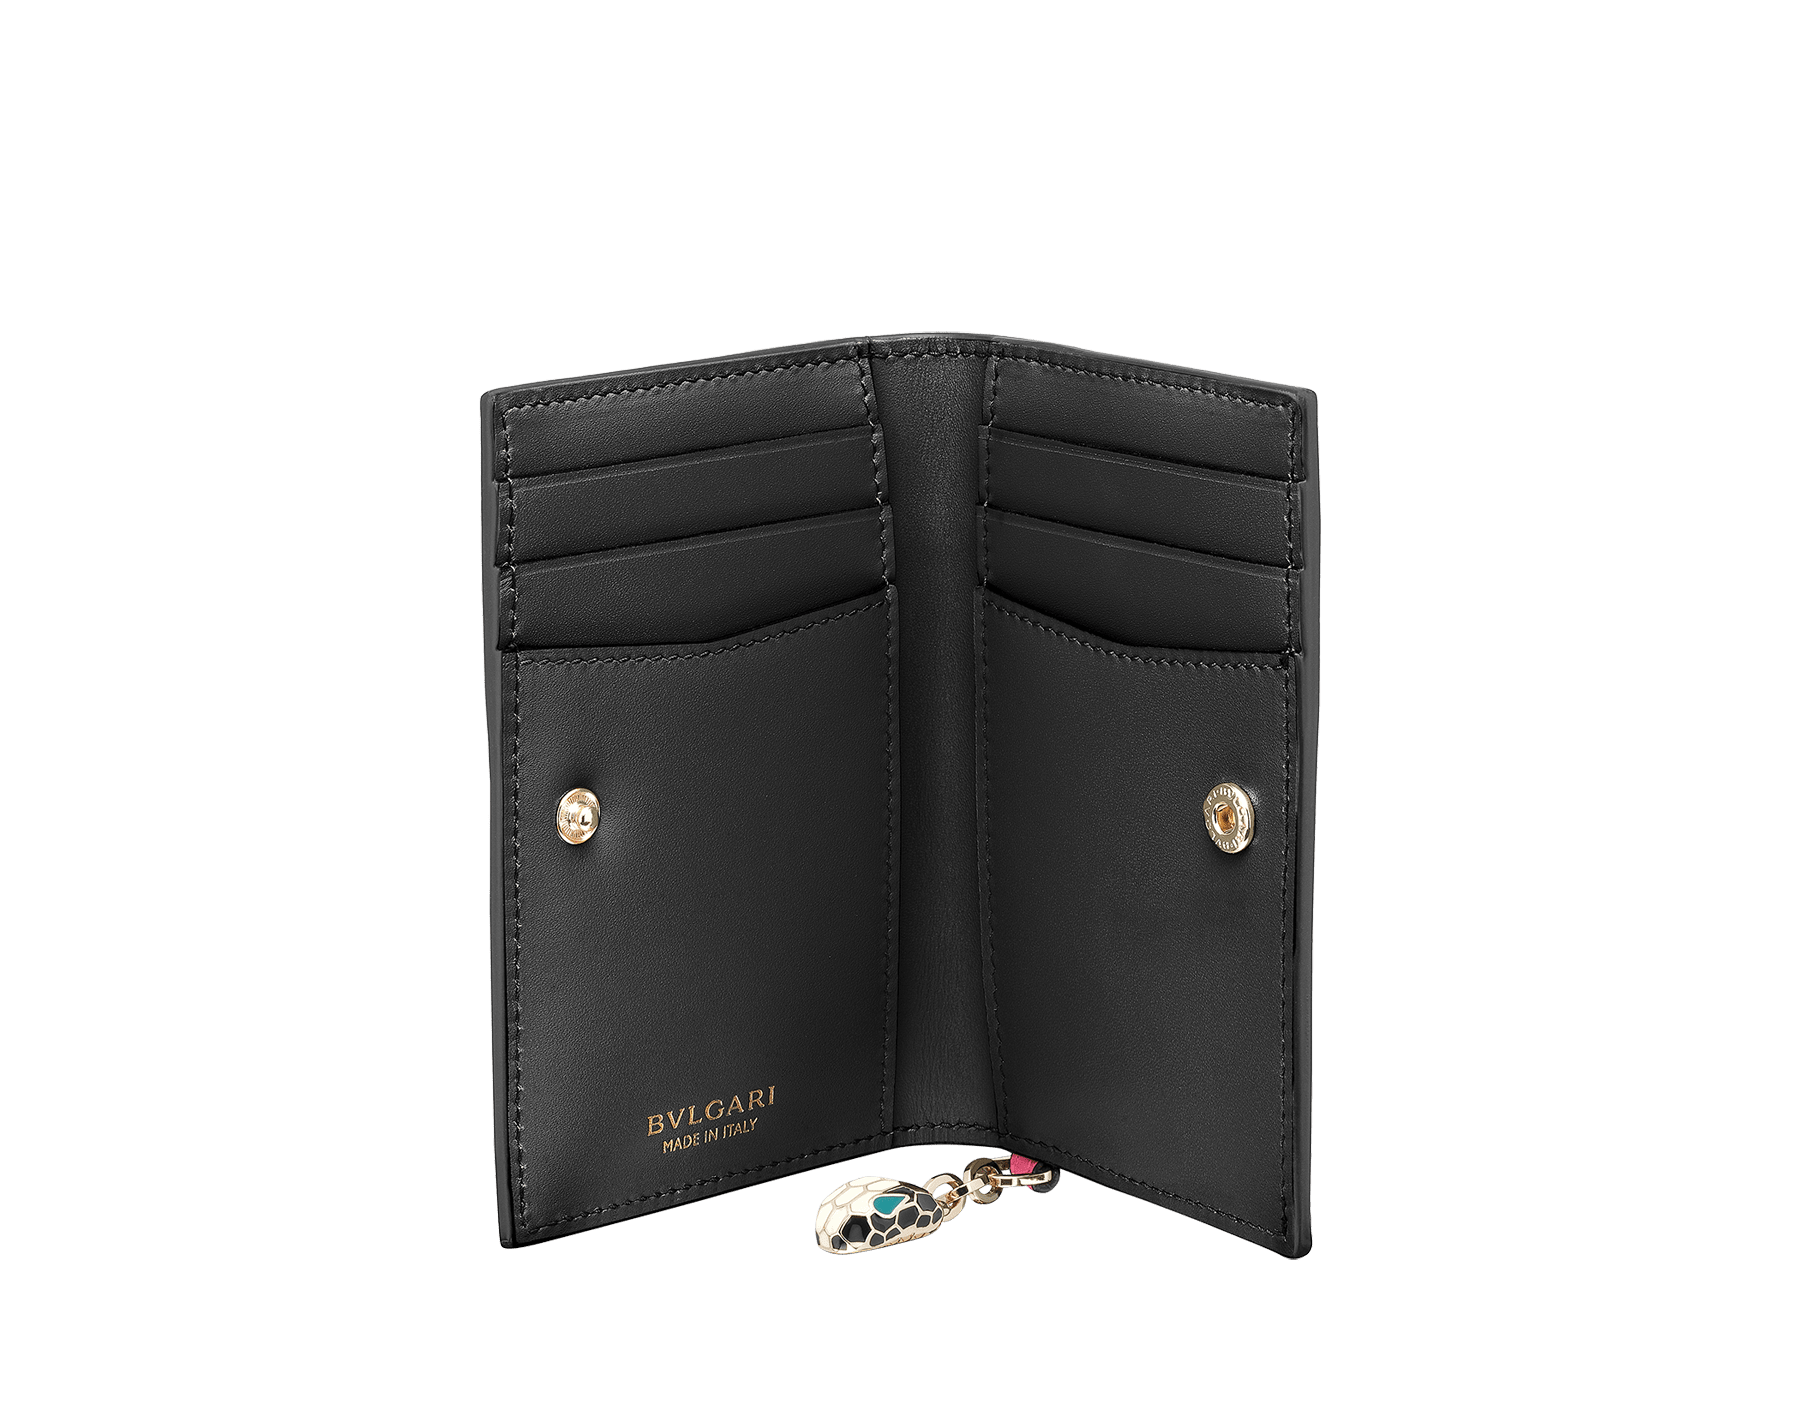 Serpenti Forever folded credit card holder in flash amethyst and black calf leather. Iconic snake head charm in black and white enamel, with green malachite enamel eyes. 288822 image 2